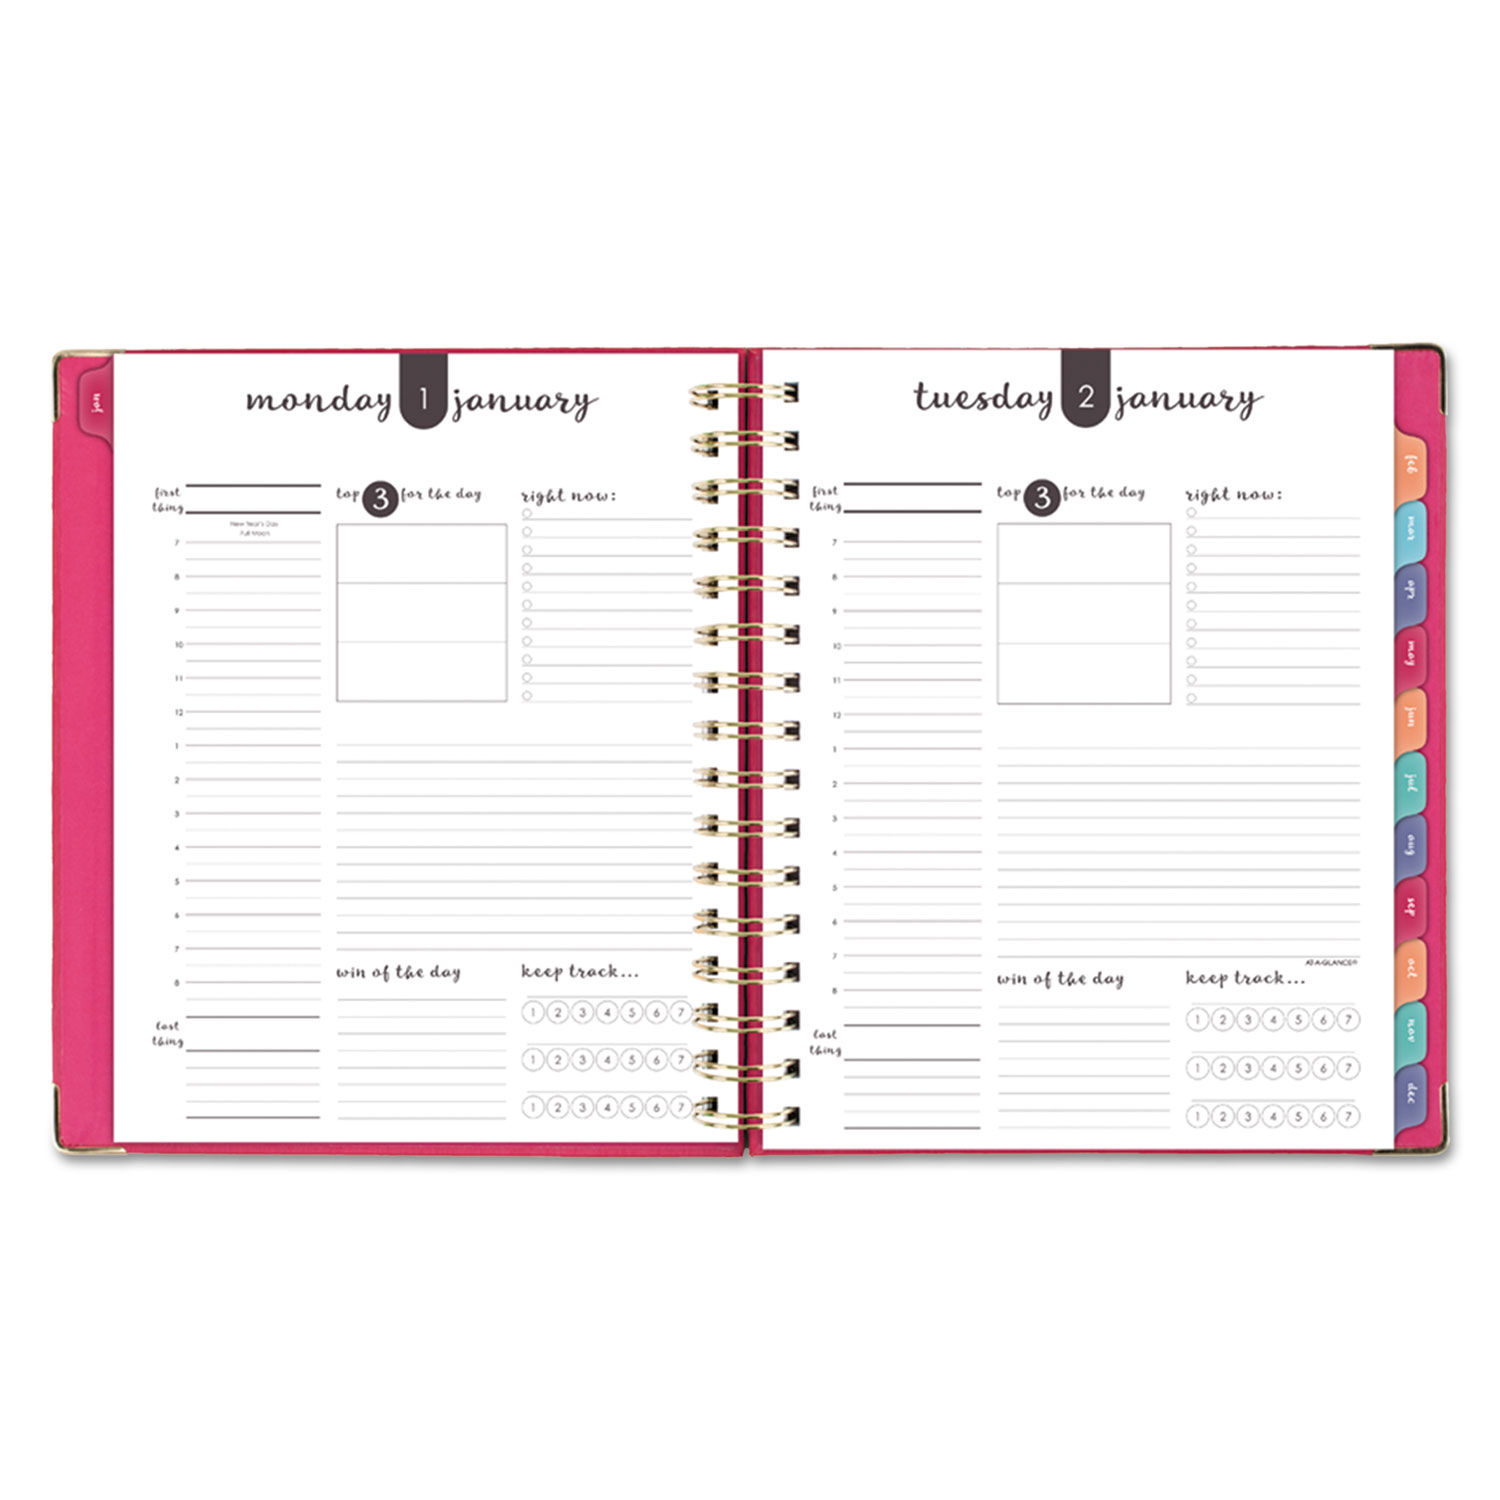 graphic regarding Hardcover Daily Planner titled Everyday Hardcover Planner, 8 3/4 x 6 7/8, Purple